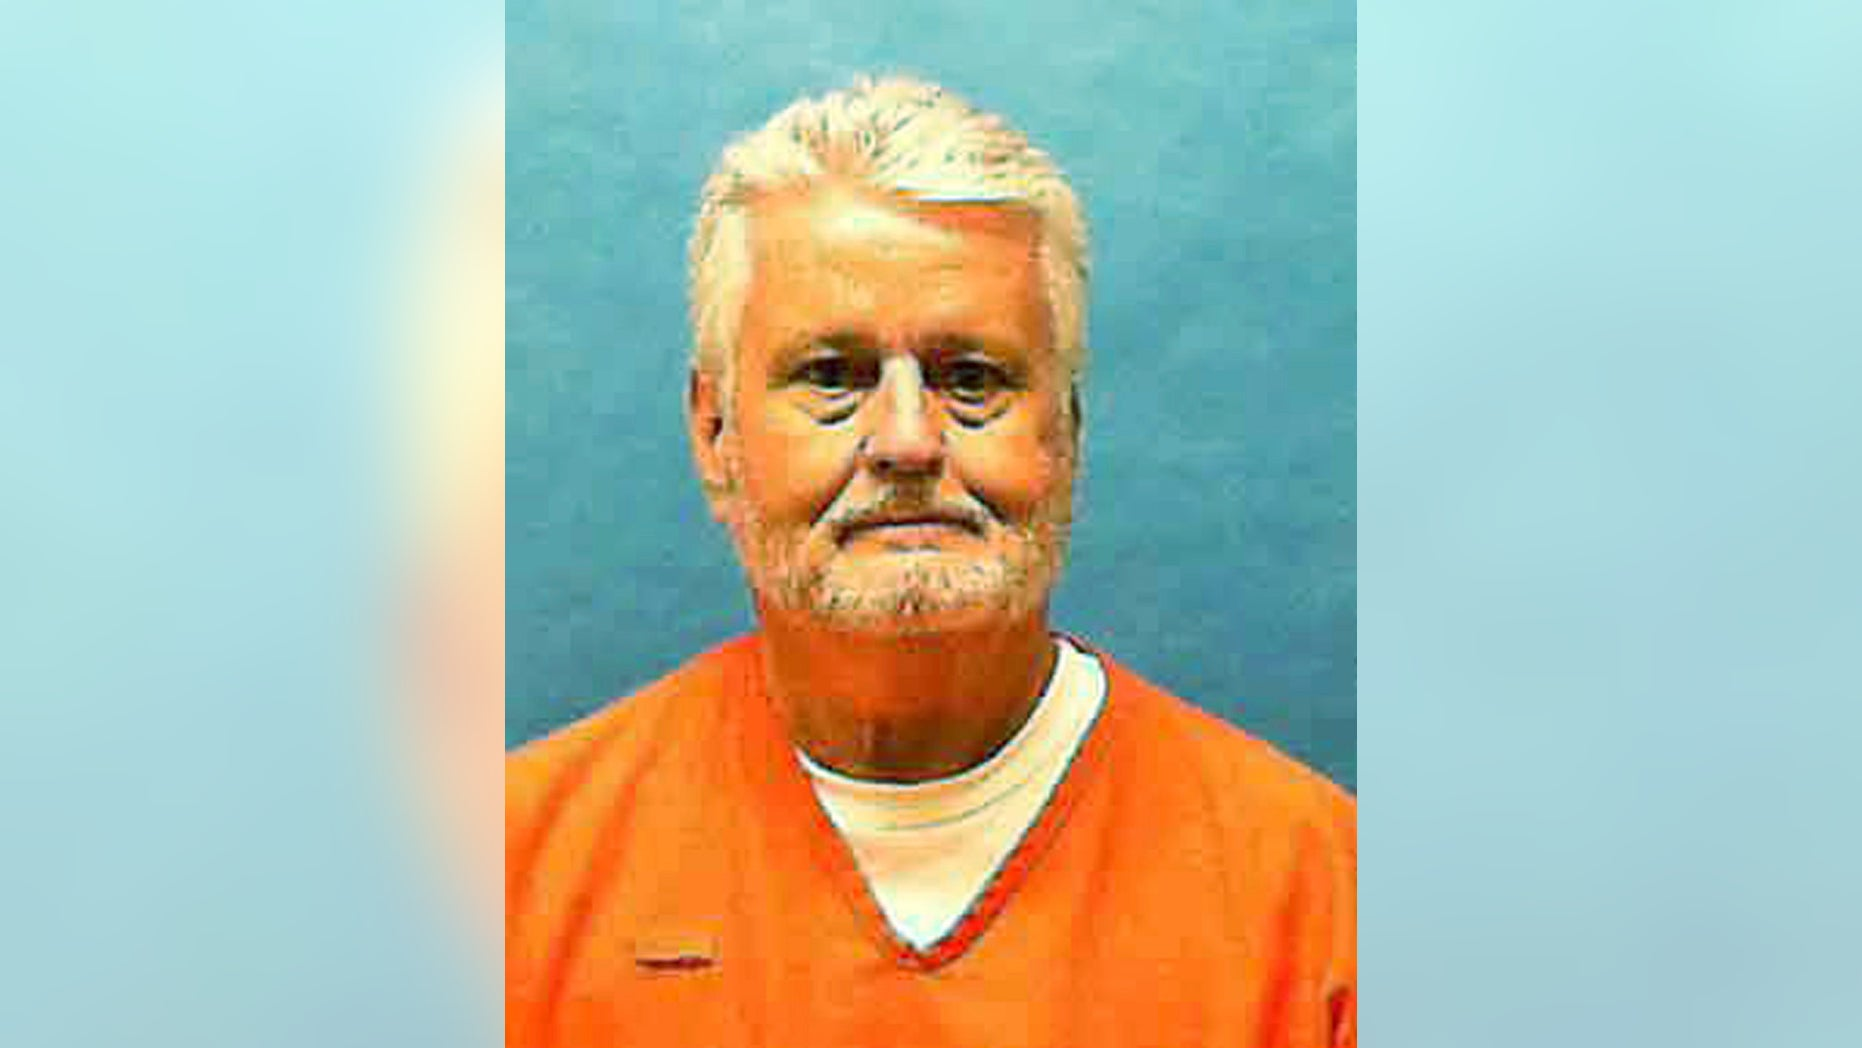 In this updated photo made available by the Florida Department of Law Enforcement shows Bobby Joe Long in custody. Long, is scheduled to be executed Thursday, May 23, 2019, for killing 10 women during eight months in 1984 that terrorized the Tampa Bay area. He was sentenced to 401 years in prison, 28 life sentences and one death sentence. His execution is for the murder of 22-year-old Michelle Simms. (Florida Department of Law Enforcement via AP)